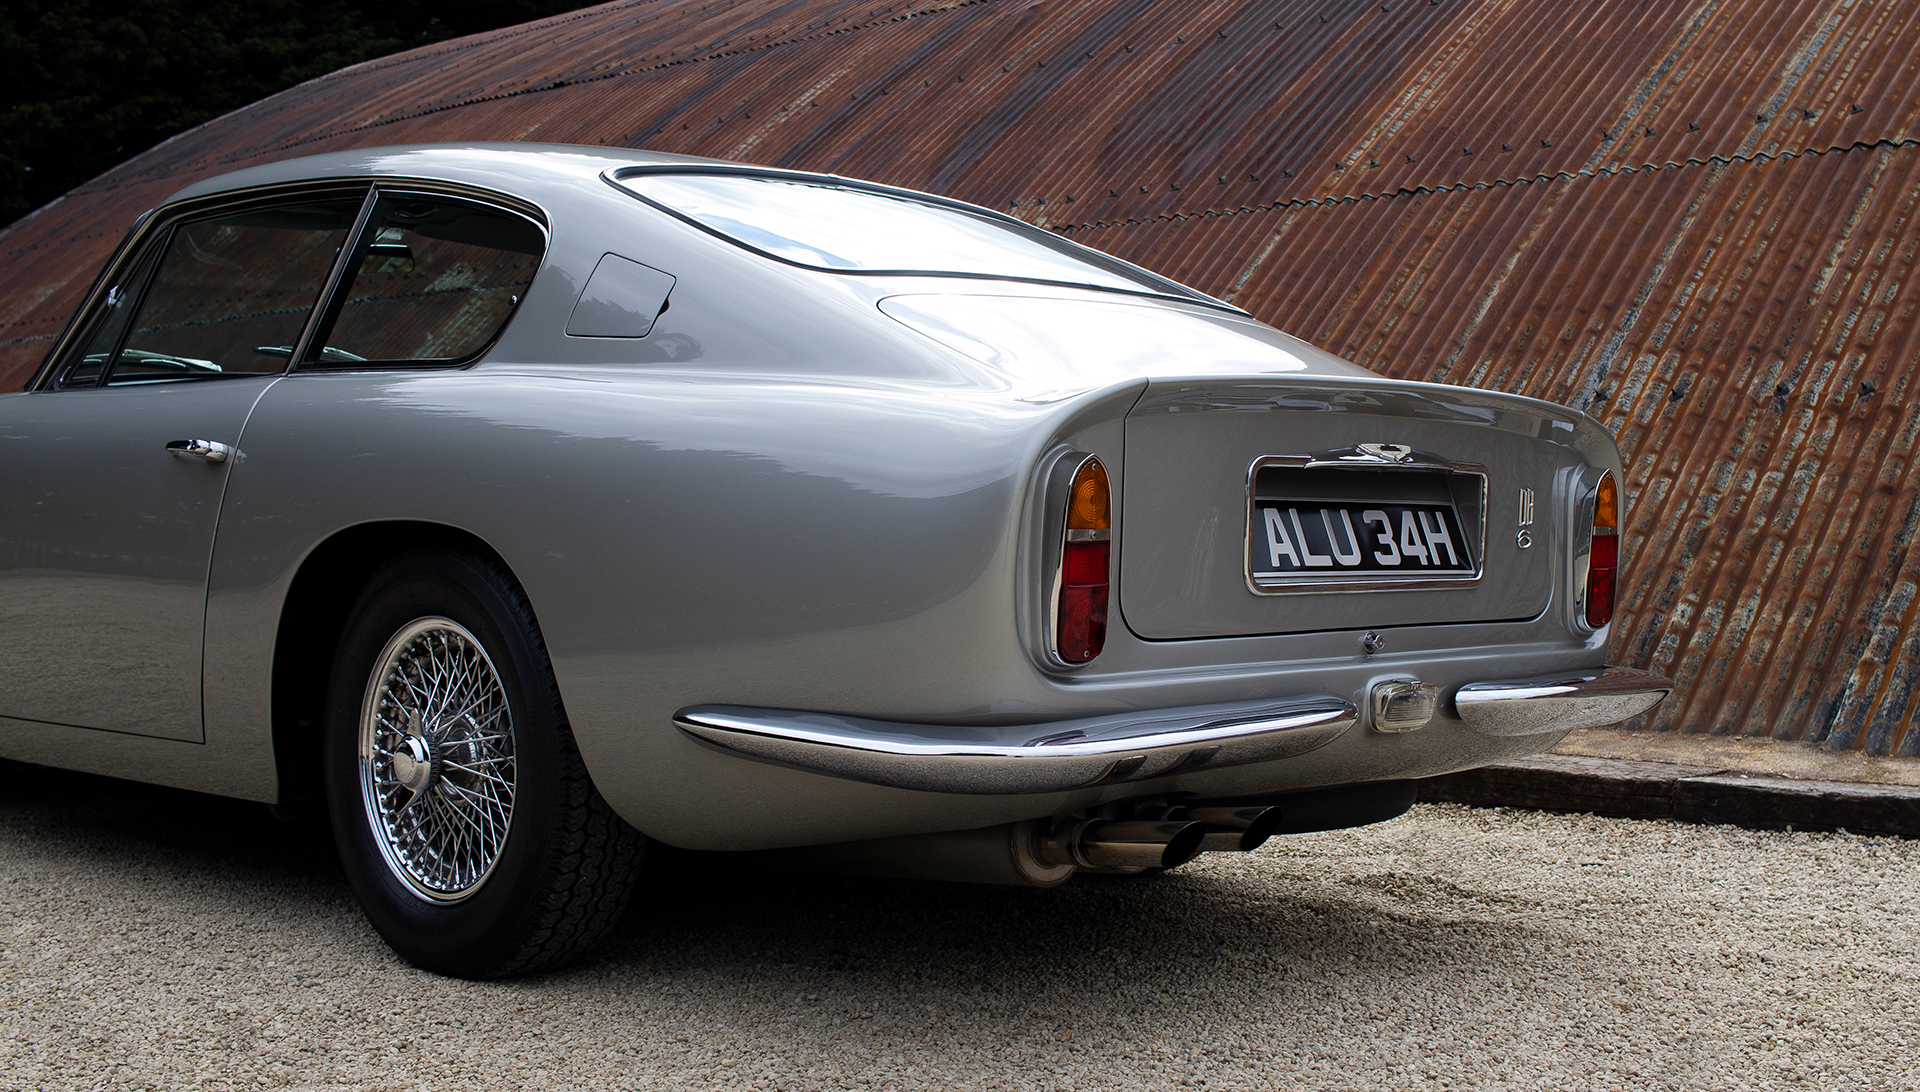 1969 Aston Martin DB6 for sale at The Classic Motor Hub